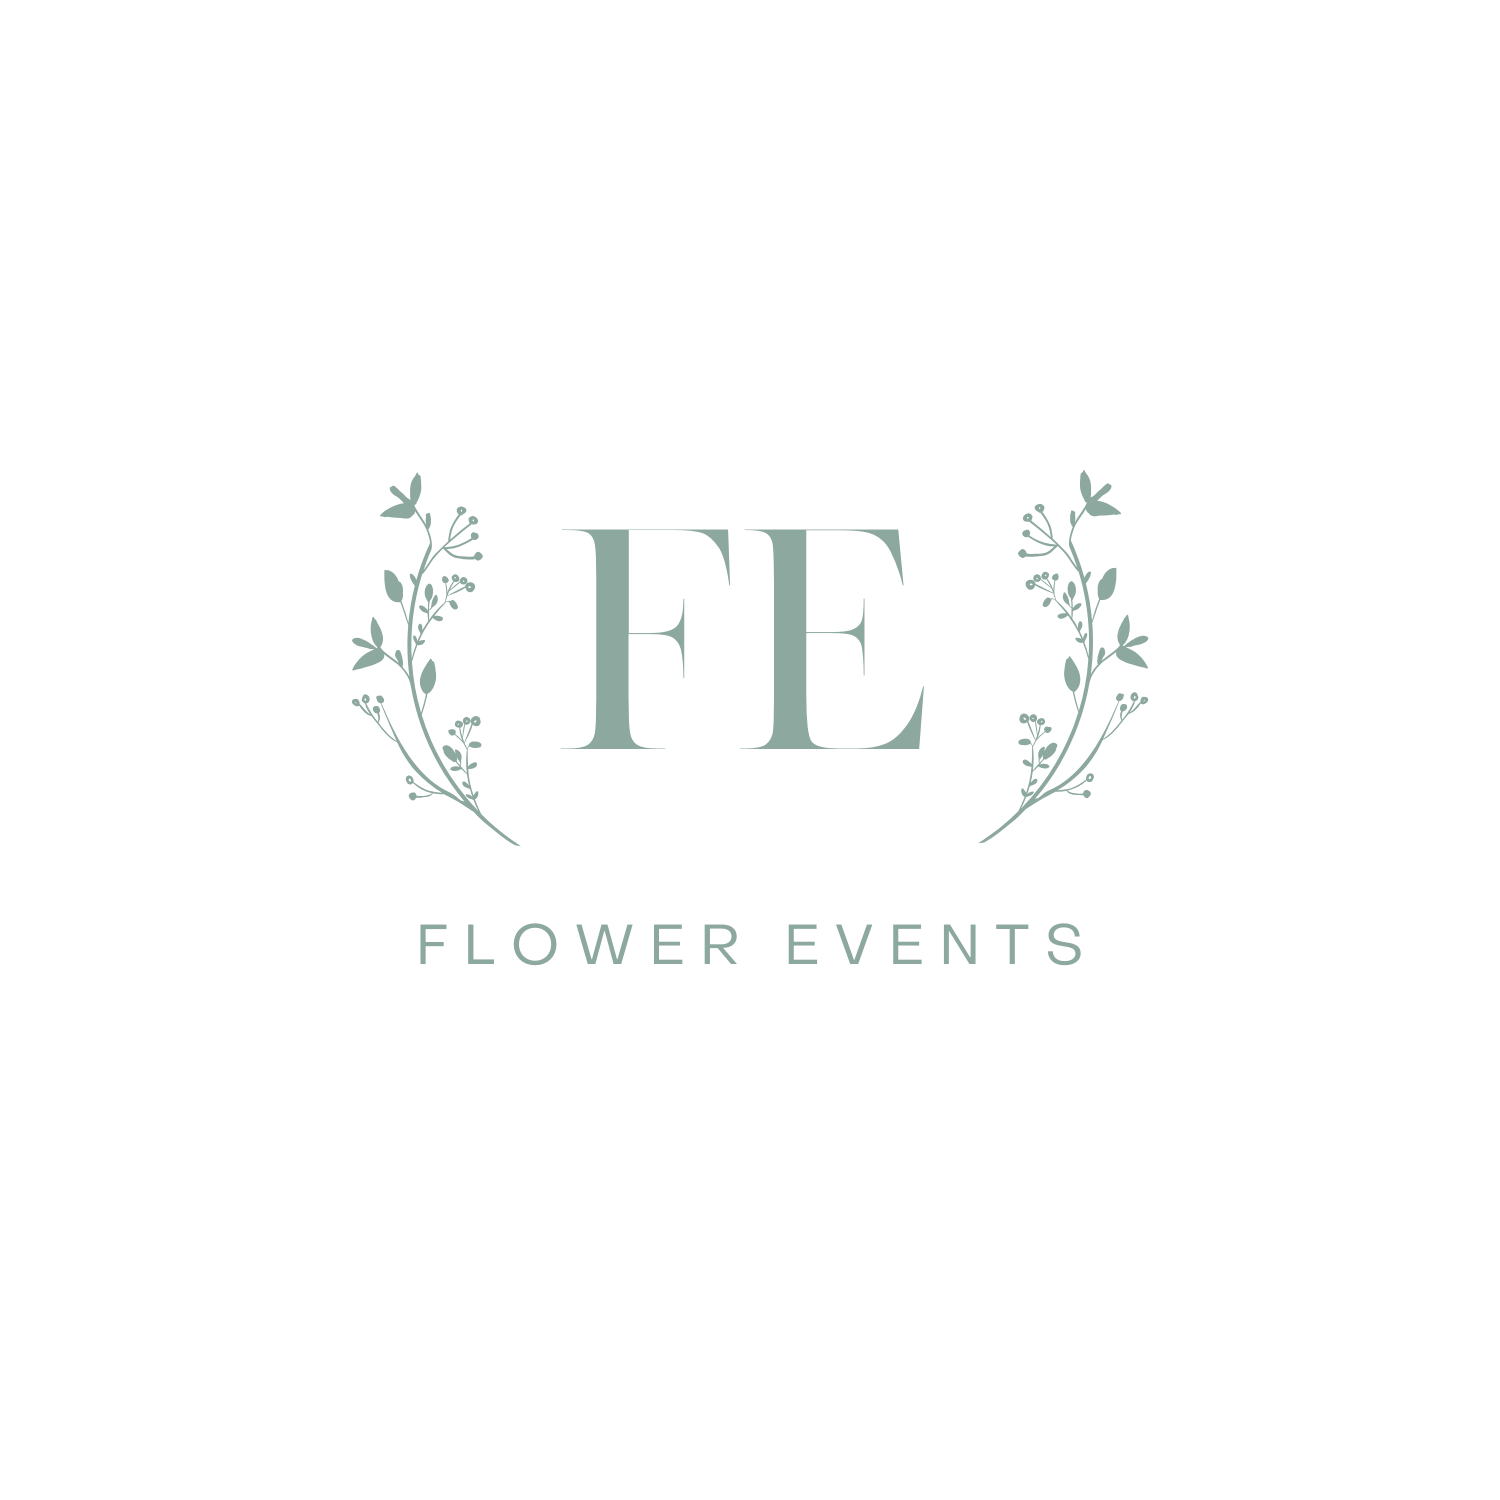 Flower Events